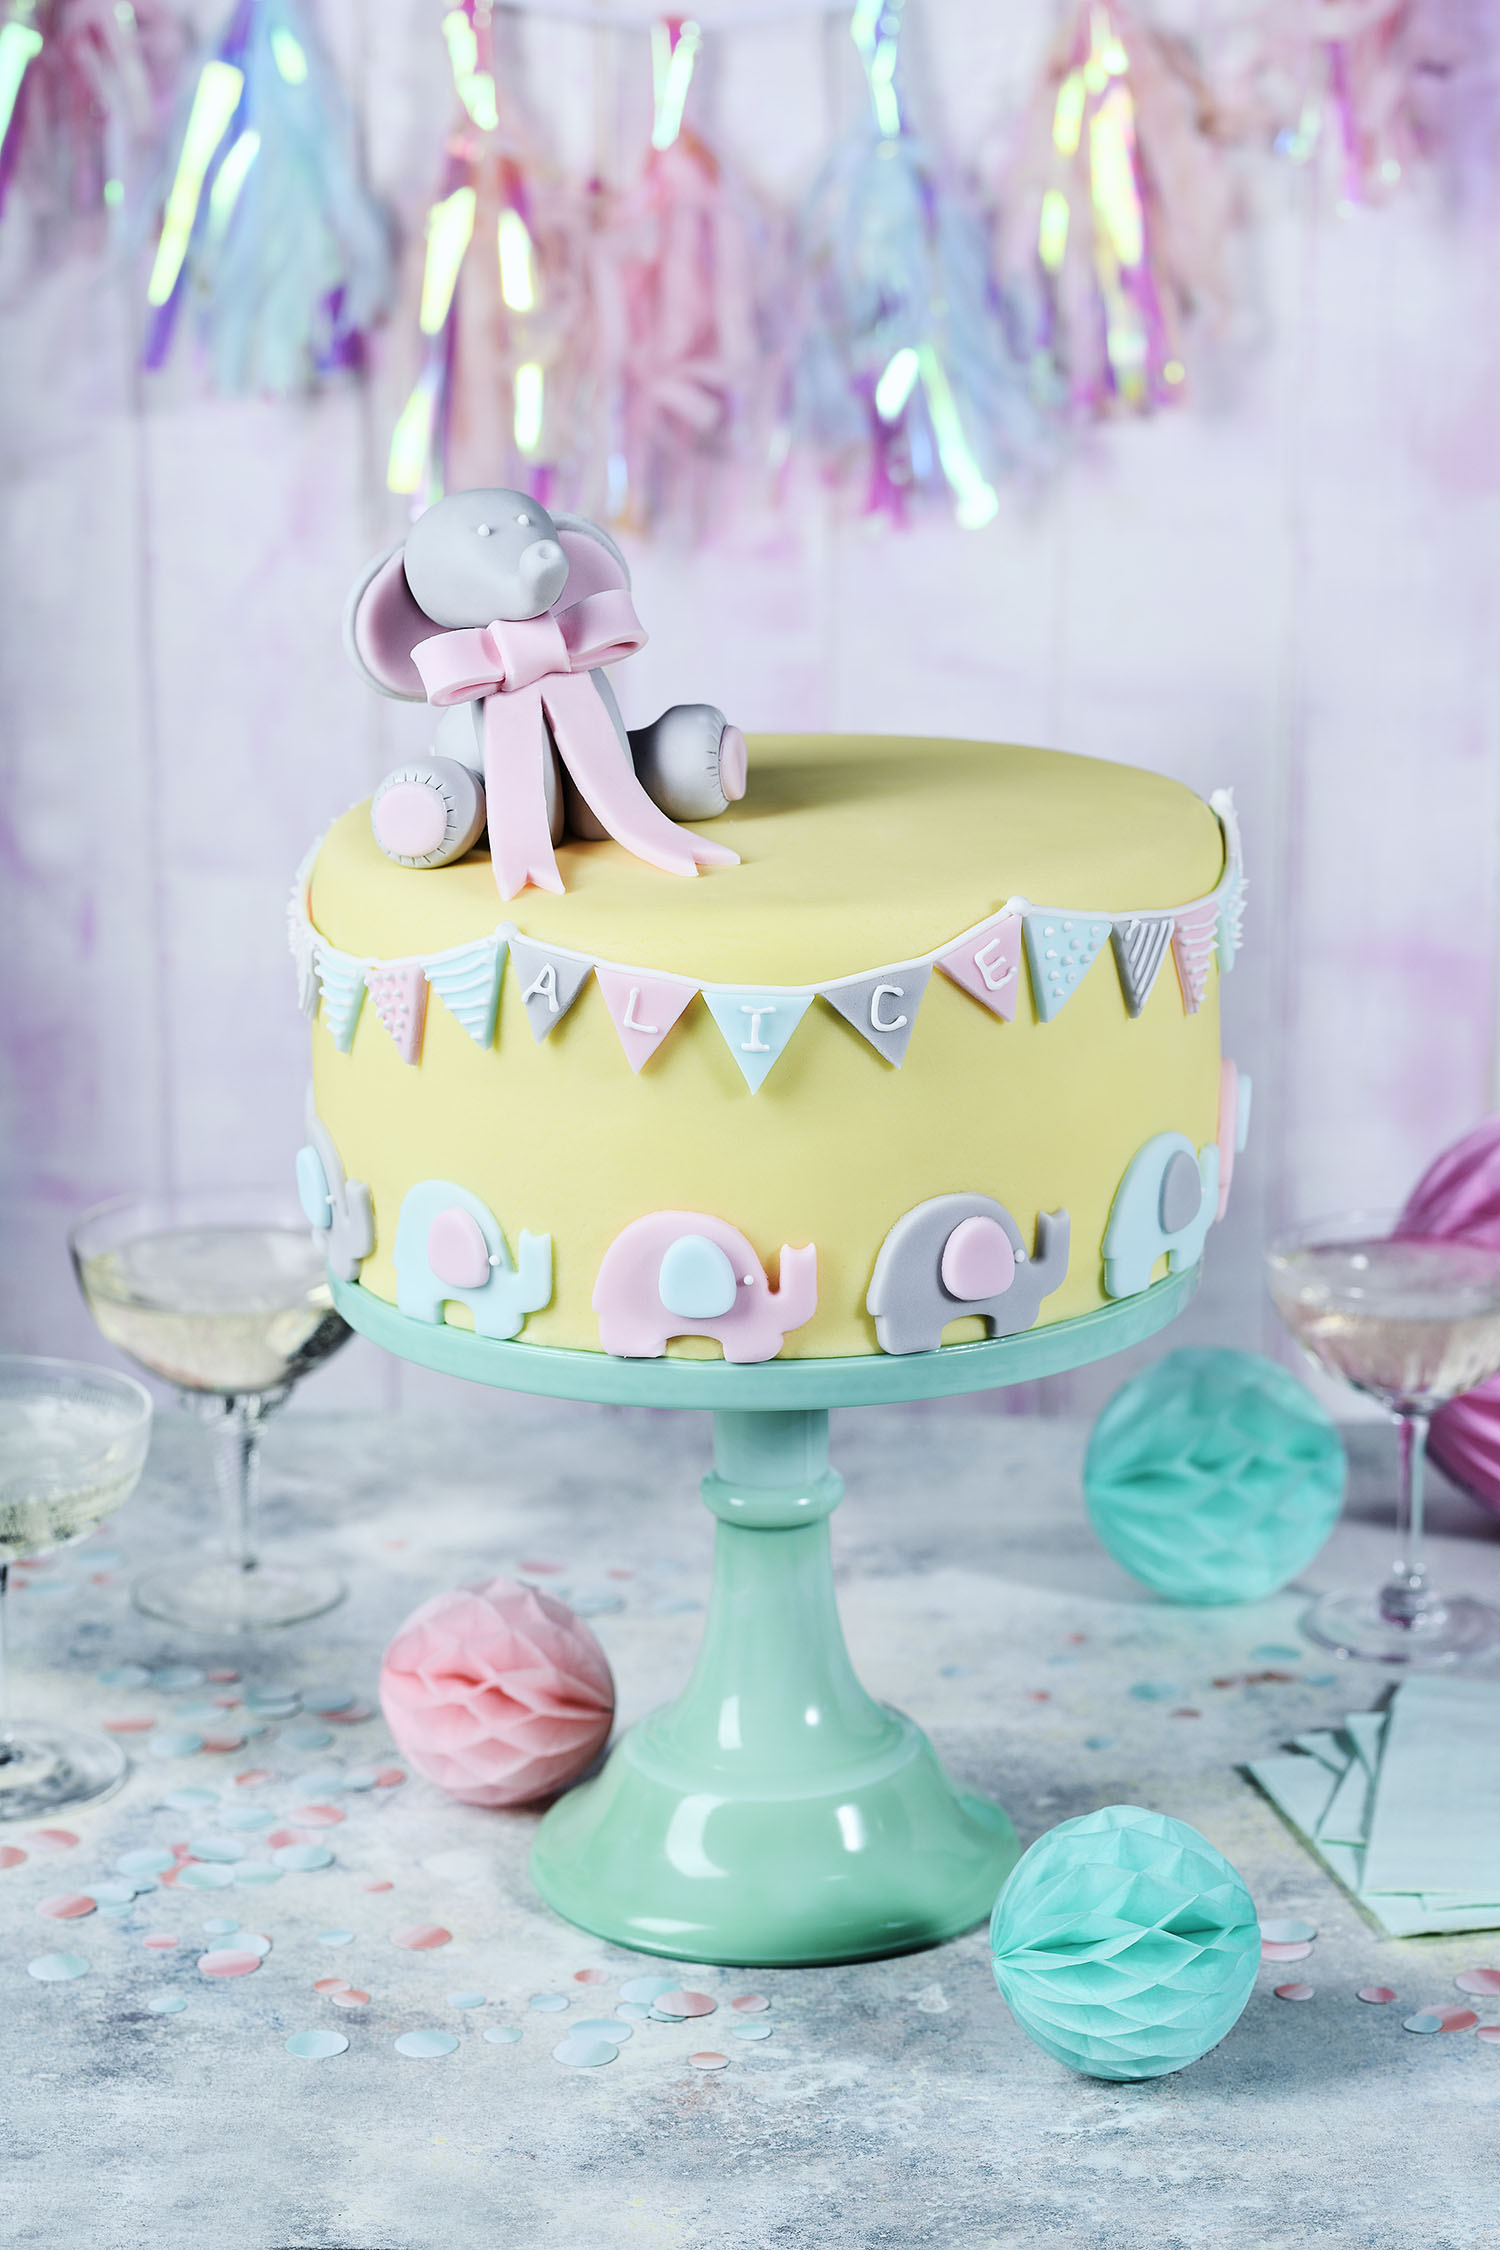 Christening Cake Photograph Charlie Richards Prop Styling Morag Farquhar